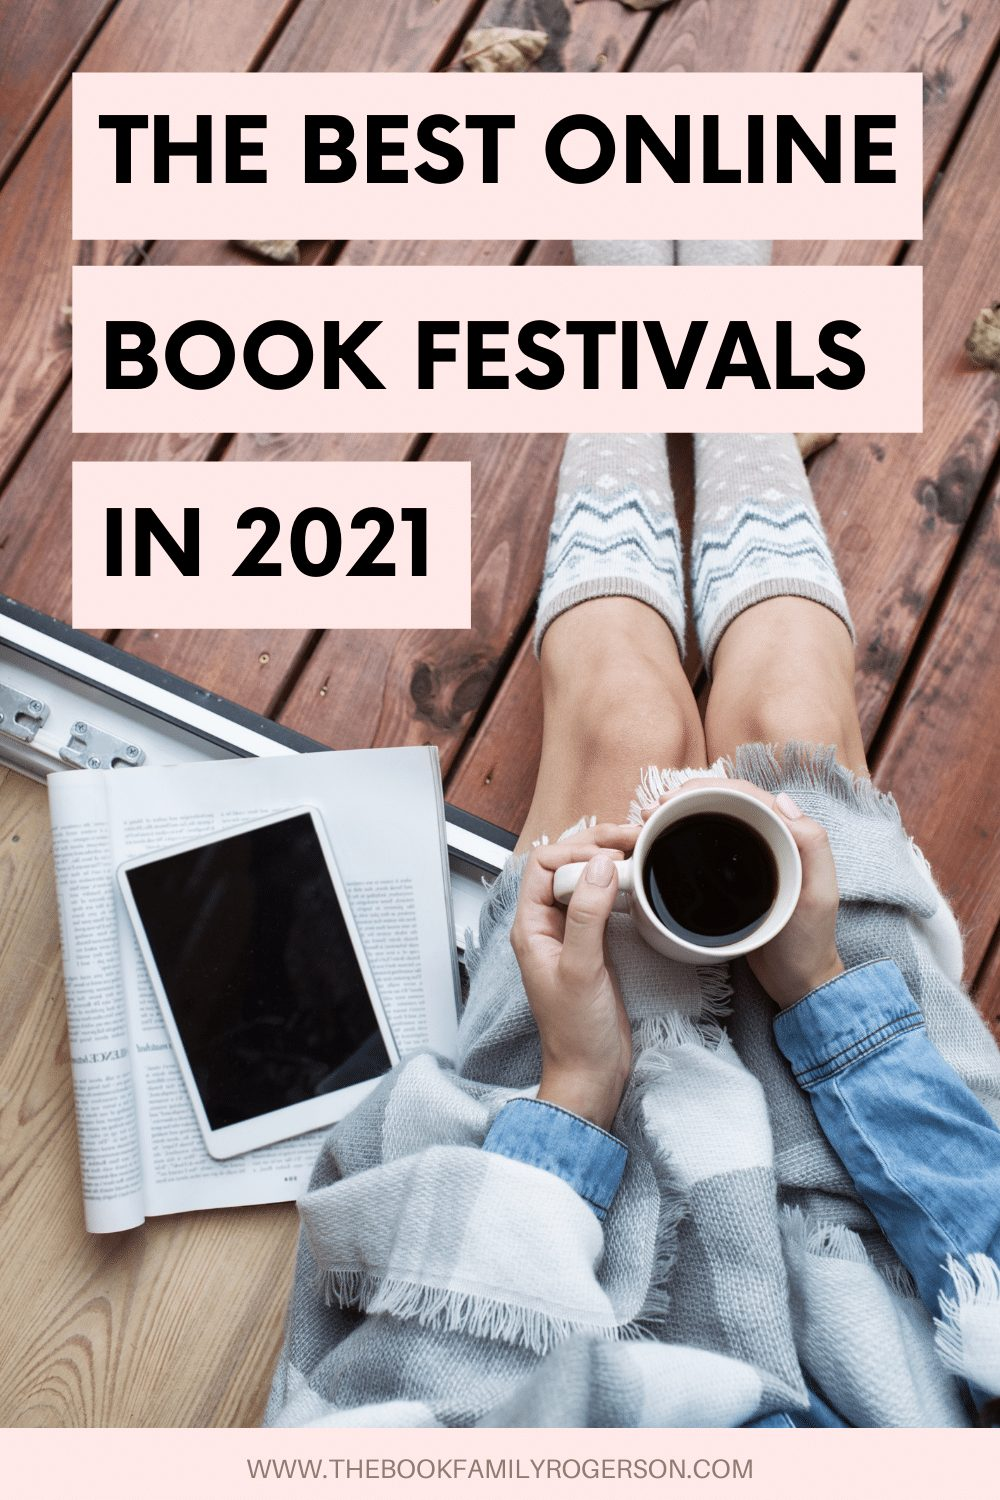 The Best Online Book Festivals in 2021